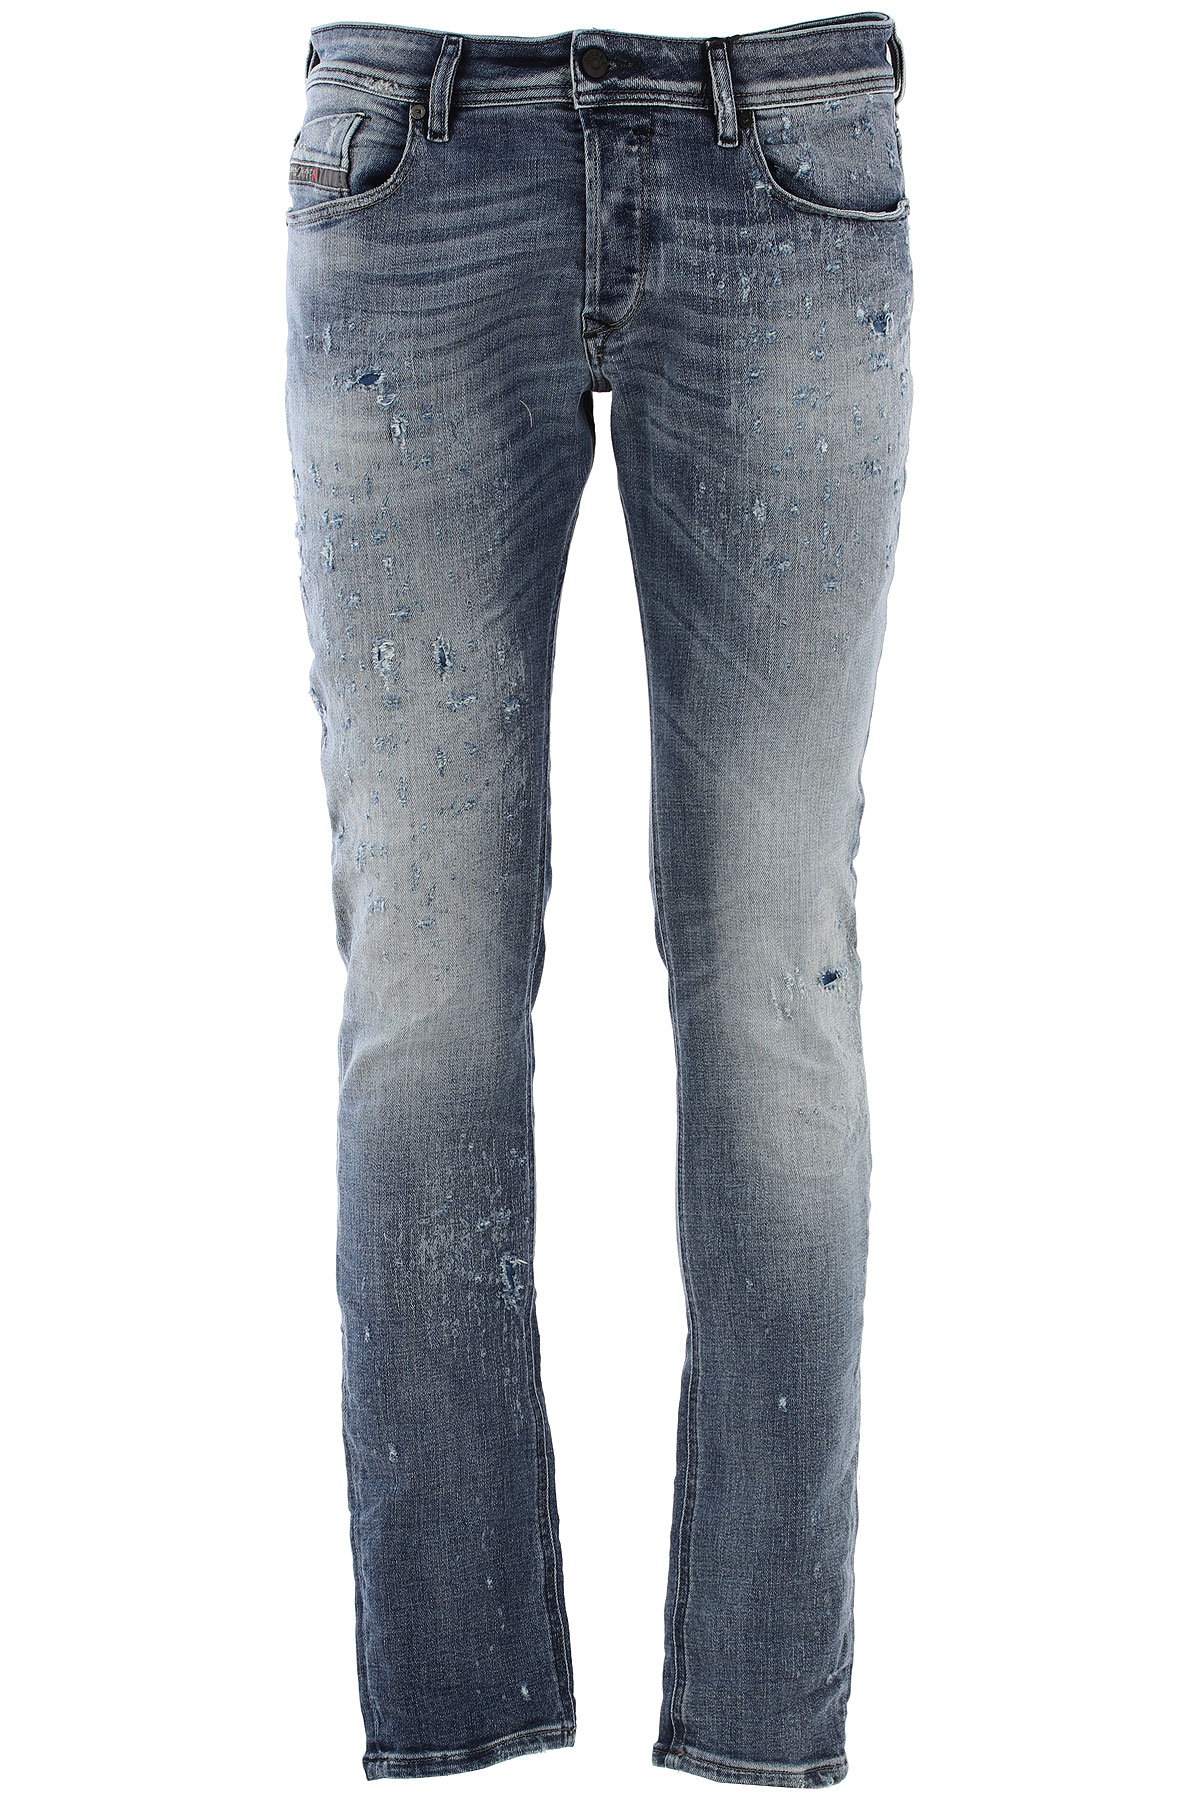 Diesel Jeans On Sale in Outlet, Light Blue, Cotton, 2017, 29 30 32 33 USA-410095